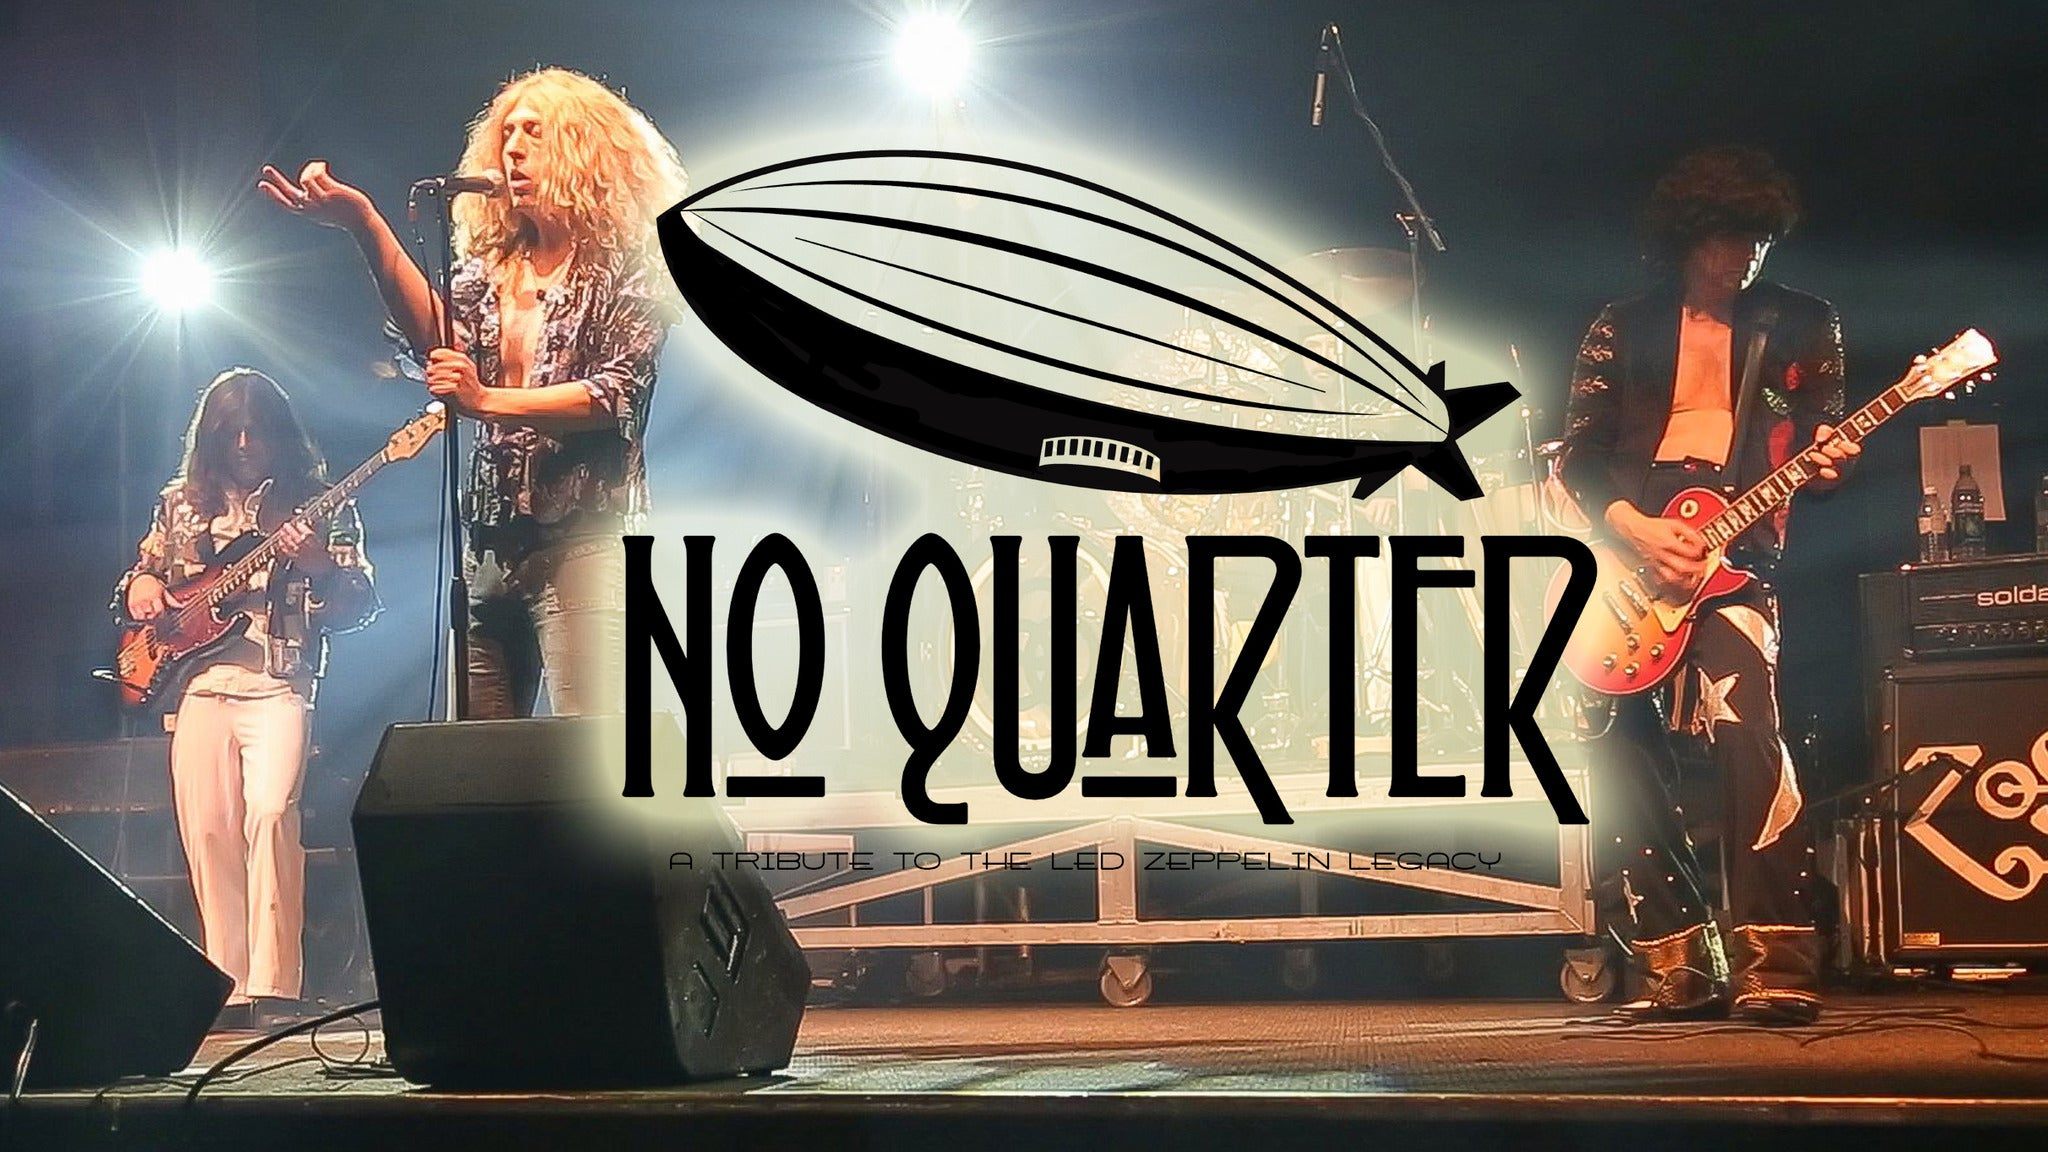 No Quarter - Milwaukee's Led Zeppelin tribute